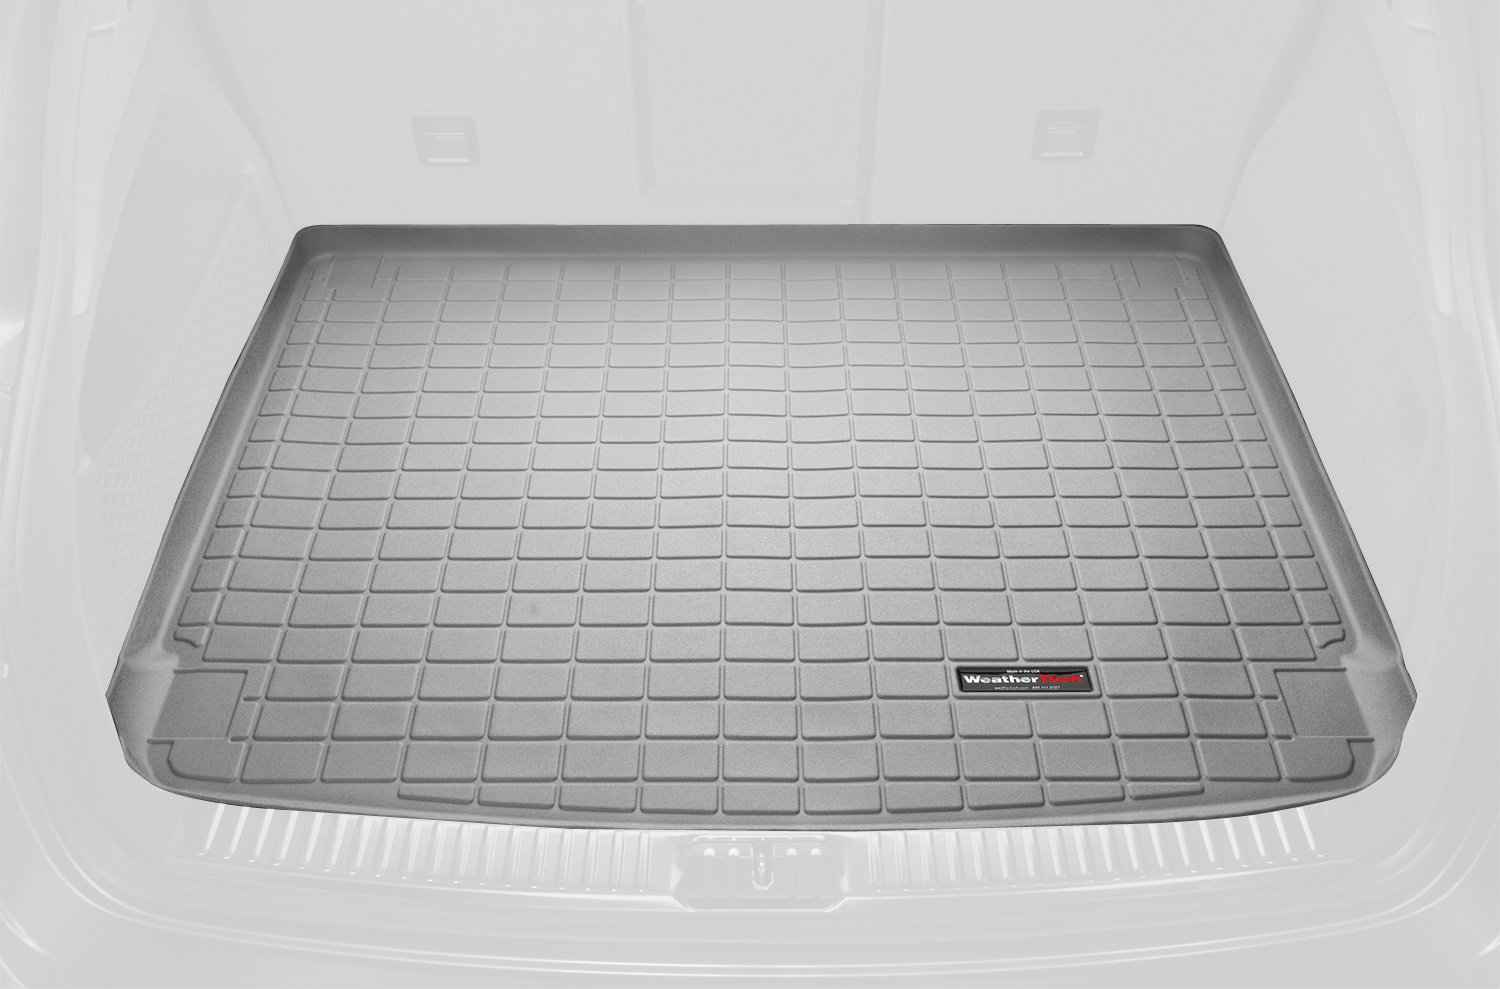 WeatherTech Custom Fit Cargo Liners for Chrysler Town /& Country Long Wheel Base Grey